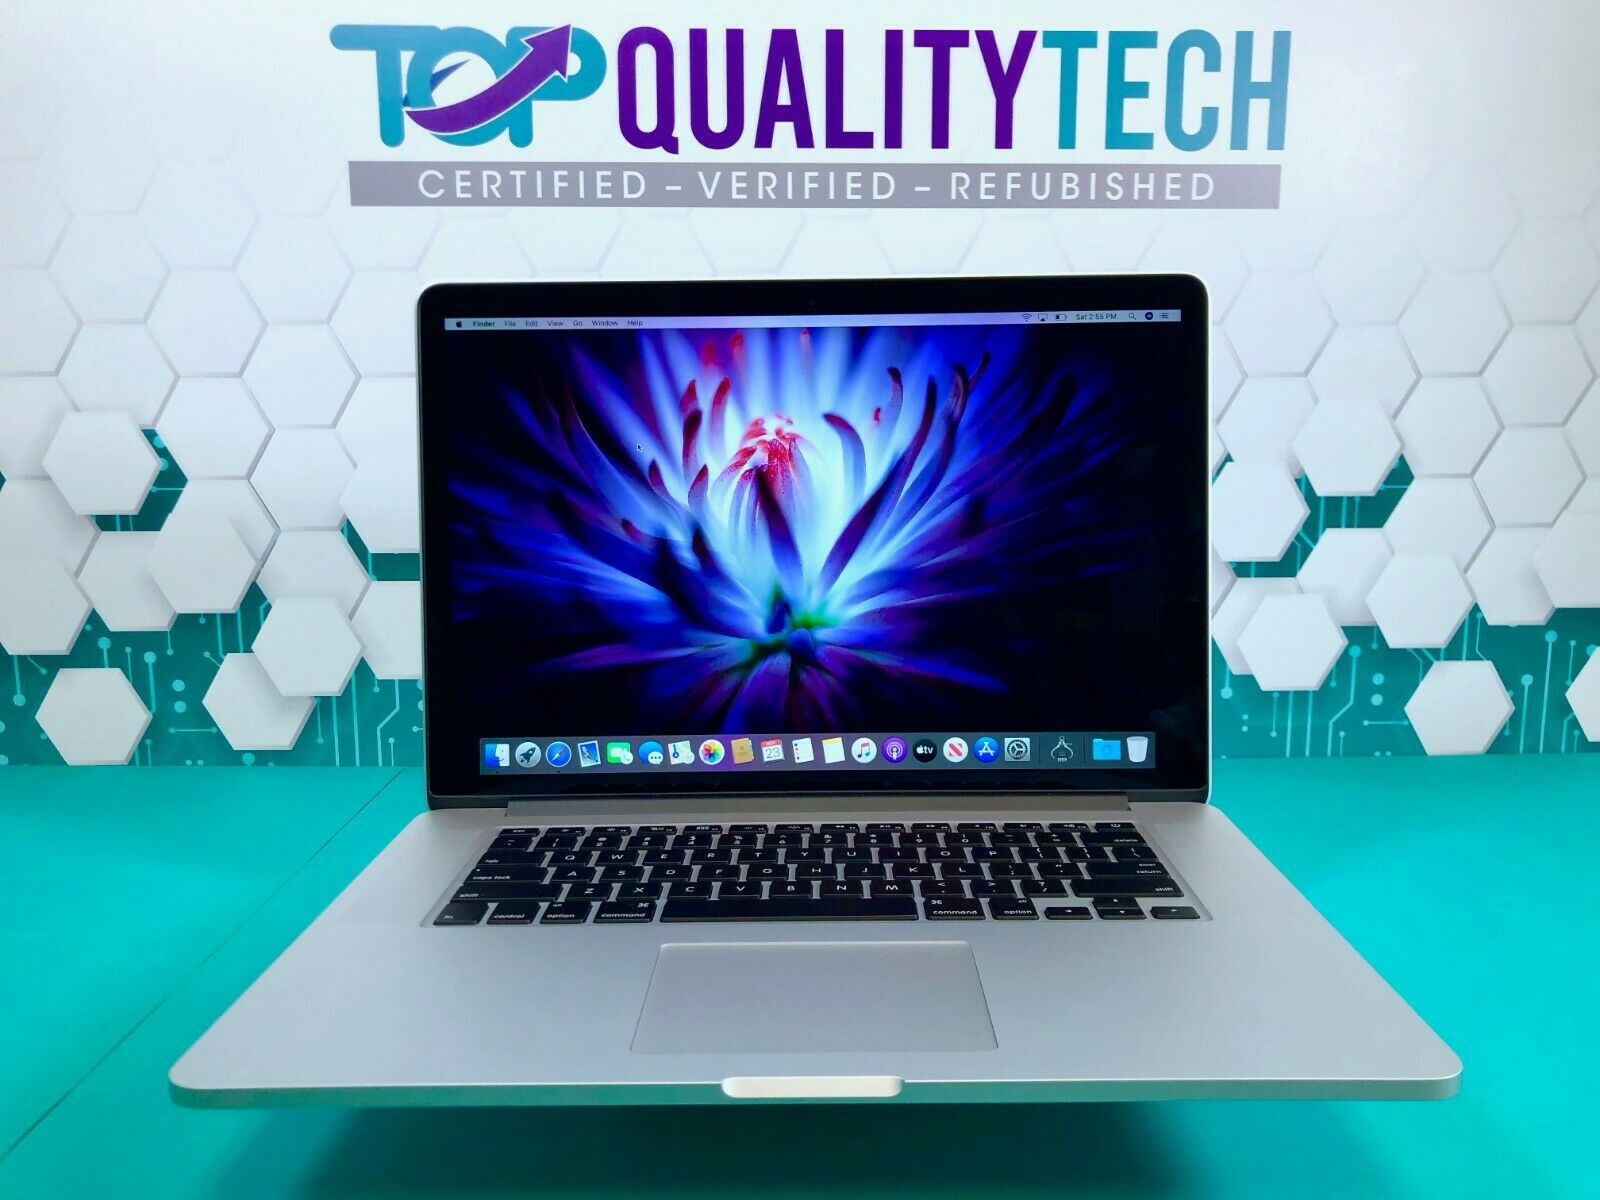 EXCELLENT Apple MacBook Pro 15 RETINA / 1TB SSD / 16GB / 3YR WARRANTY / GRAY. Buy it now for 1299.00